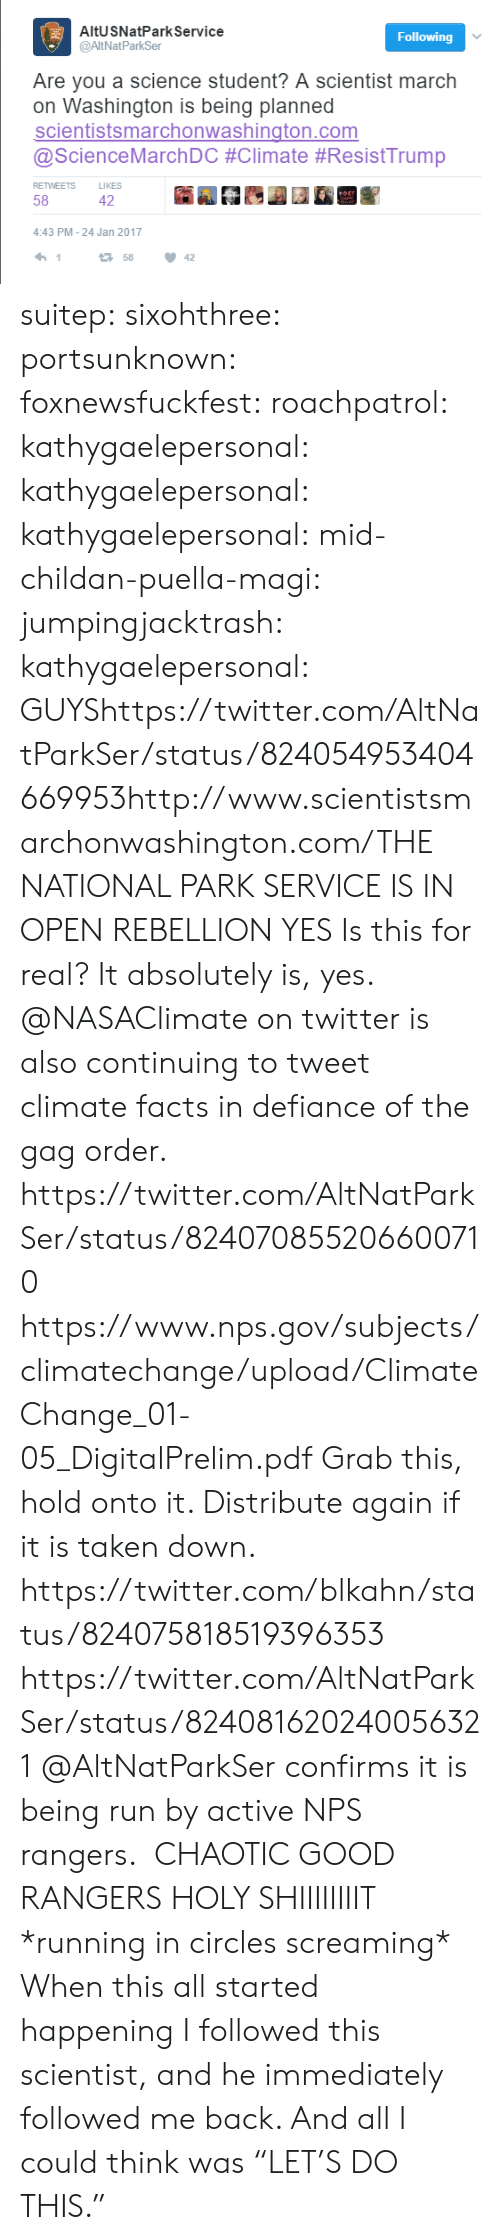 """Defiance: AltUSNatPark Service  @AltNatParkSer  Following  Are you a science student? A scientist march  on Washington is being planned  scientistsmarchonwashington.com  @ScienceMarchDC #Climate #ResistTrump  RETWEETS  LIKES  58  42  4:43 PM-24 Jan 2017  1  158  42 suitep: sixohthree:  portsunknown:  foxnewsfuckfest:  roachpatrol:   kathygaelepersonal:  kathygaelepersonal:  kathygaelepersonal:  mid-childan-puella-magi:  jumpingjacktrash:  kathygaelepersonal:   GUYShttps://twitter.com/AltNatParkSer/status/824054953404669953http://www.scientistsmarchonwashington.com/THE NATIONAL PARK SERVICE IS IN OPEN REBELLION   YES  Is this for real?  It absolutely is, yes. @NASAClimate on twitter is also continuing to tweet climate facts in defiance of the gag order. https://twitter.com/AltNatParkSer/status/824070855206600710 https://www.nps.gov/subjects/climatechange/upload/ClimateChange_01-05_DigitalPrelim.pdf Grab this, hold onto it. Distribute again if it is taken down.  https://twitter.com/blkahn/status/824075818519396353  https://twitter.com/AltNatParkSer/status/824081620240056321 @AltNatParkSer confirms it is being run by active NPS rangers.  CHAOTIC GOOD RANGERS   HOLY SHIIIIIIIIT  *running in circles screaming*   When this all started happening I followed this scientist, and he immediately followed me back. And all I could think was """"LET'S DO THIS."""""""